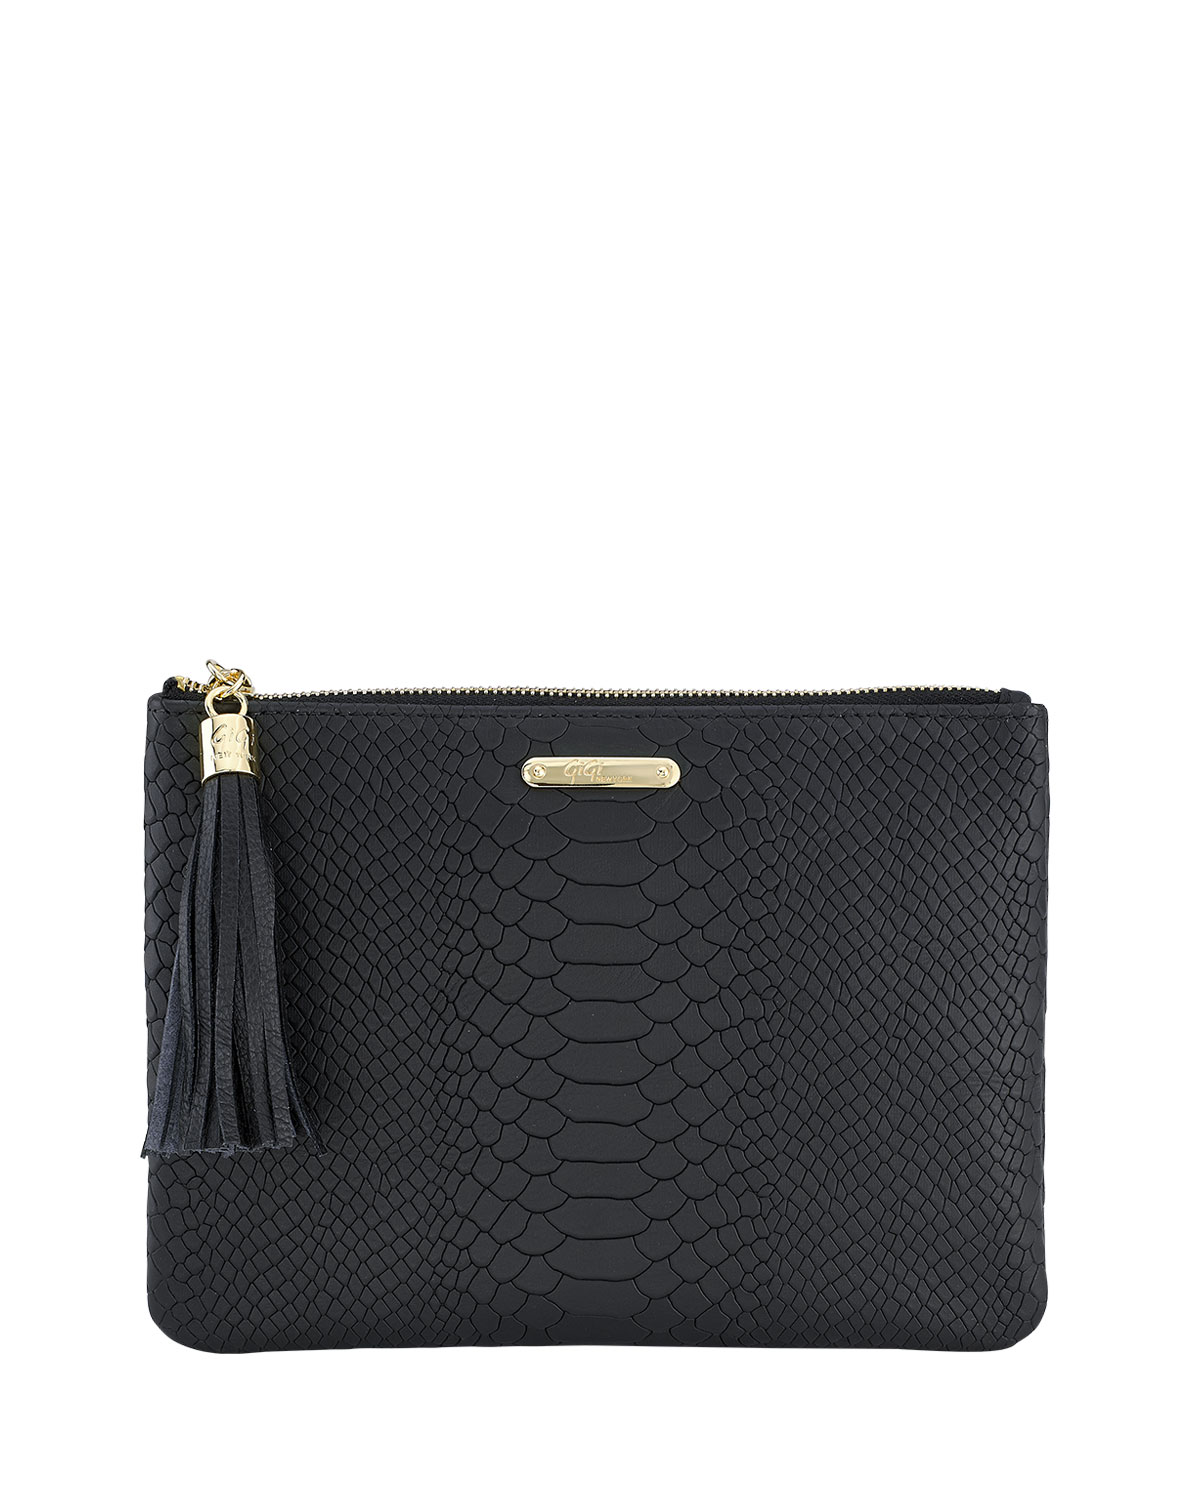 All In One Python-Embossed Clutch Bag